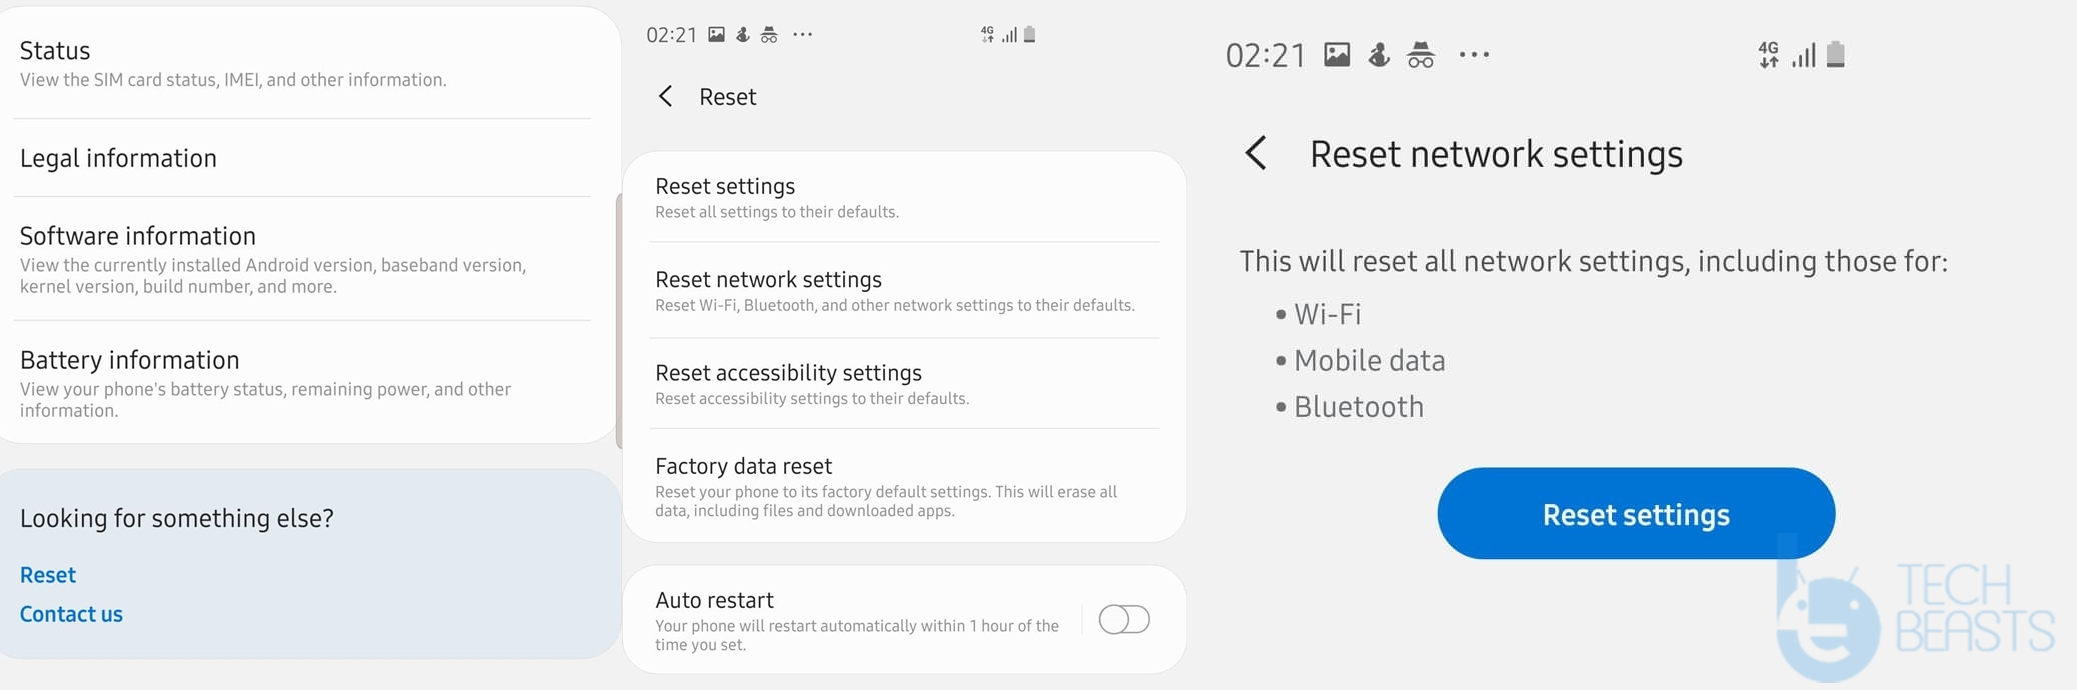 Galaxy S10 - Reset Network Settings.